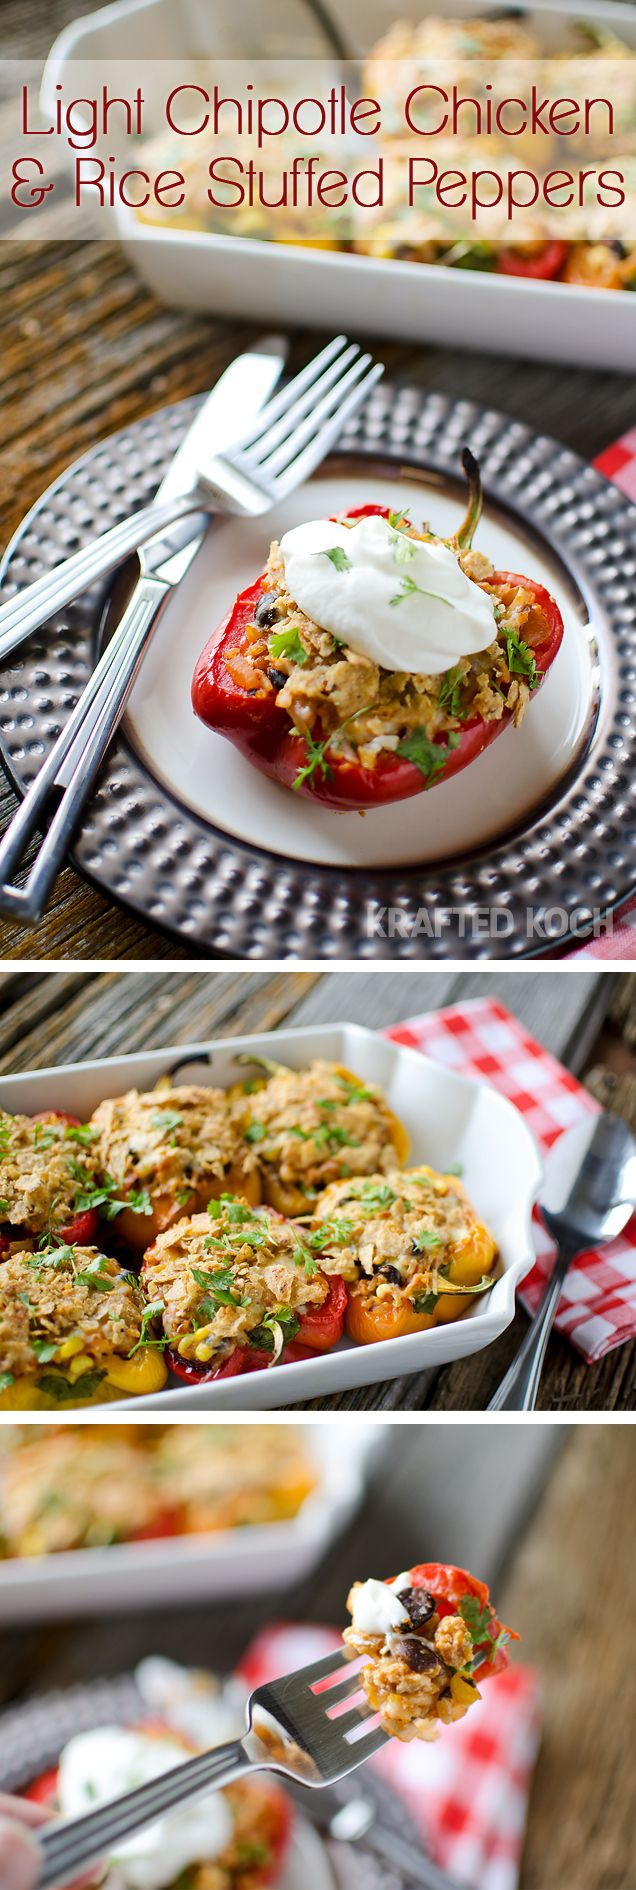 Light Chipotle Chicken & Rice Stuffed Peppers - Krafted Koch